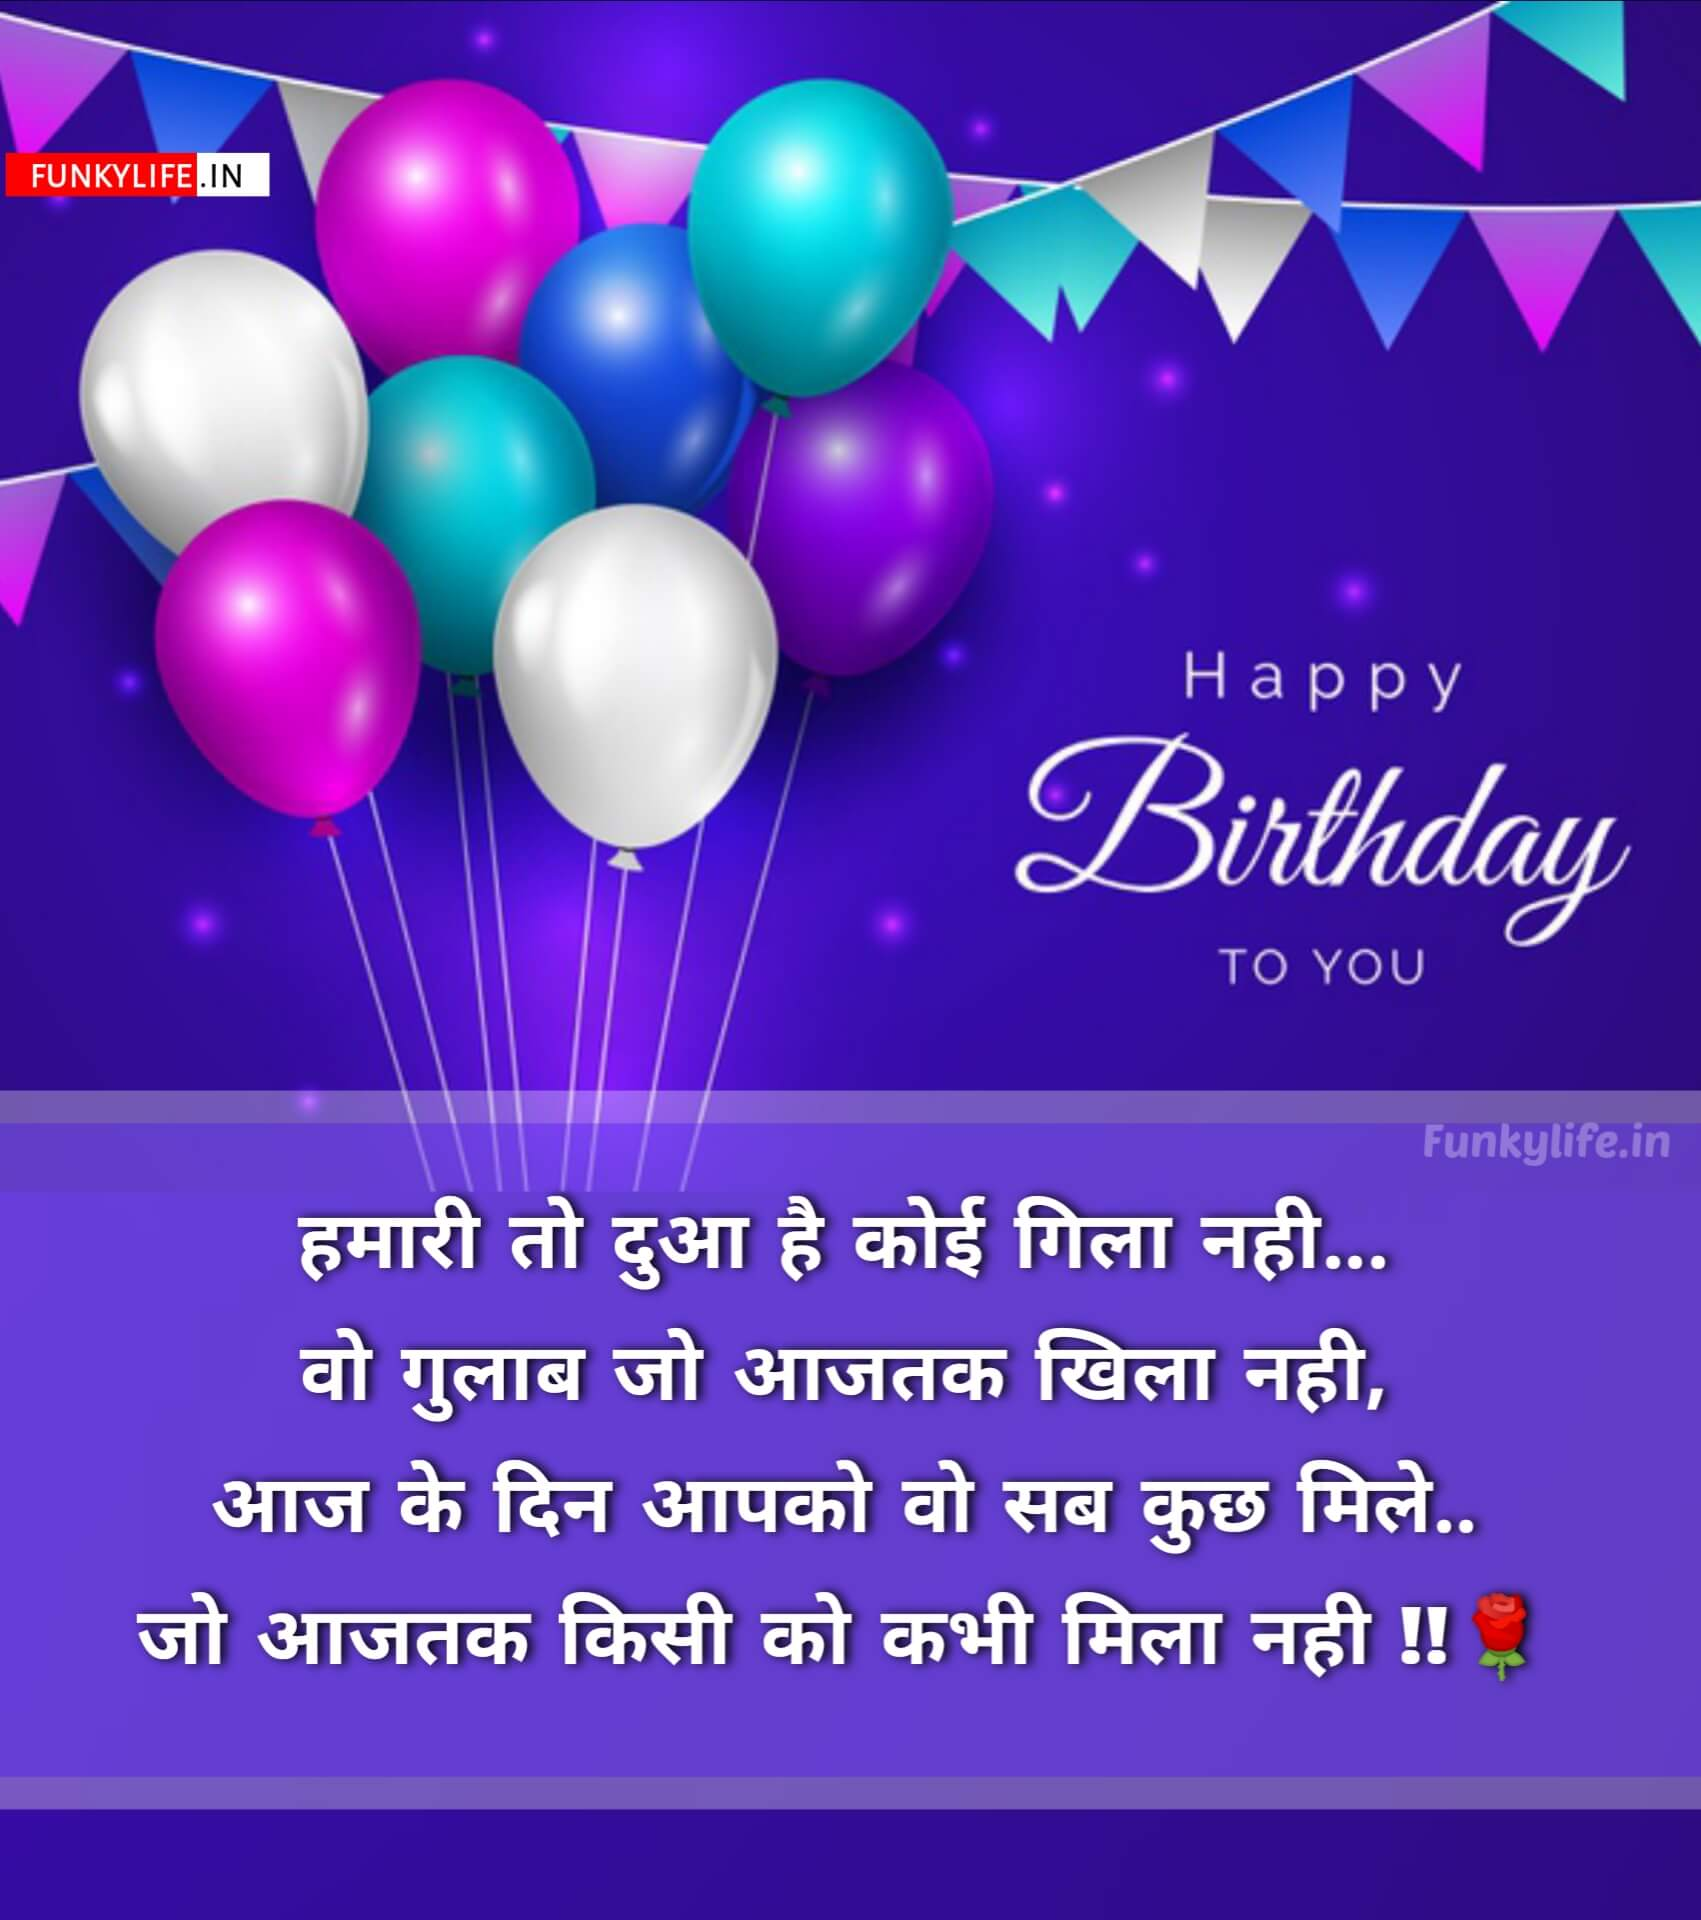 Happy birthday to you image in Hindi download funky life